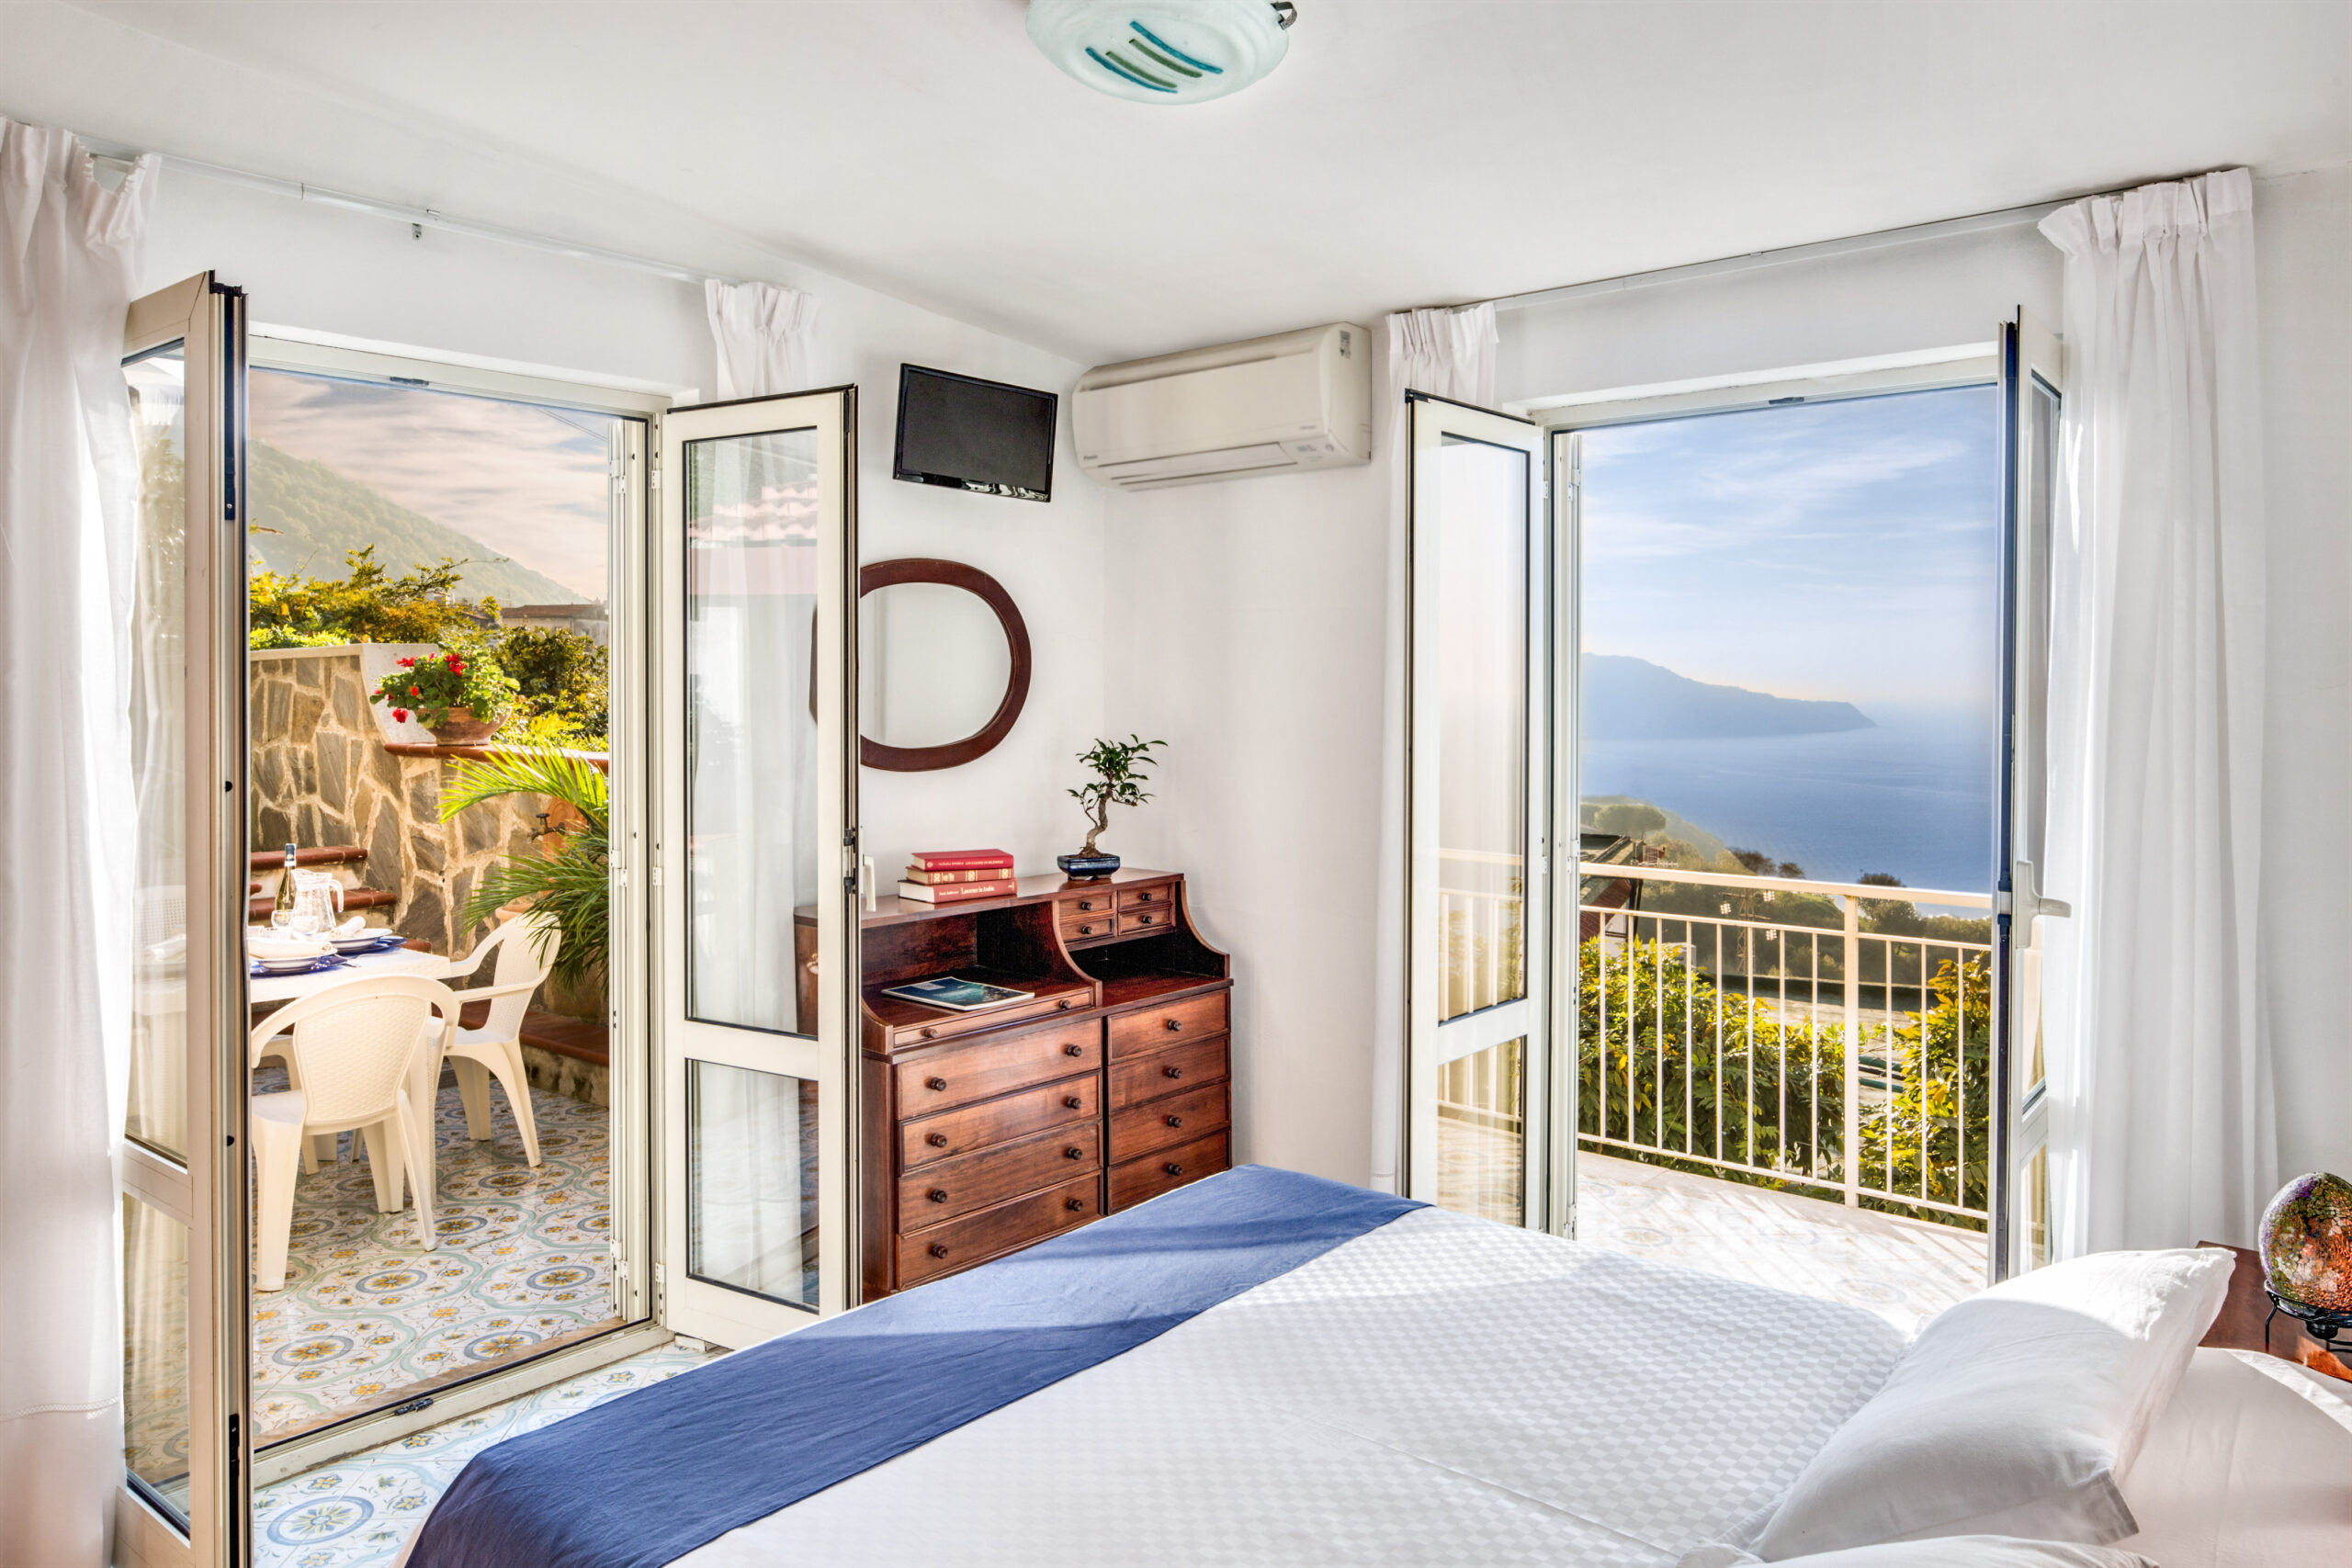 gocce di capri one bedroom apatment deluxe sorrento